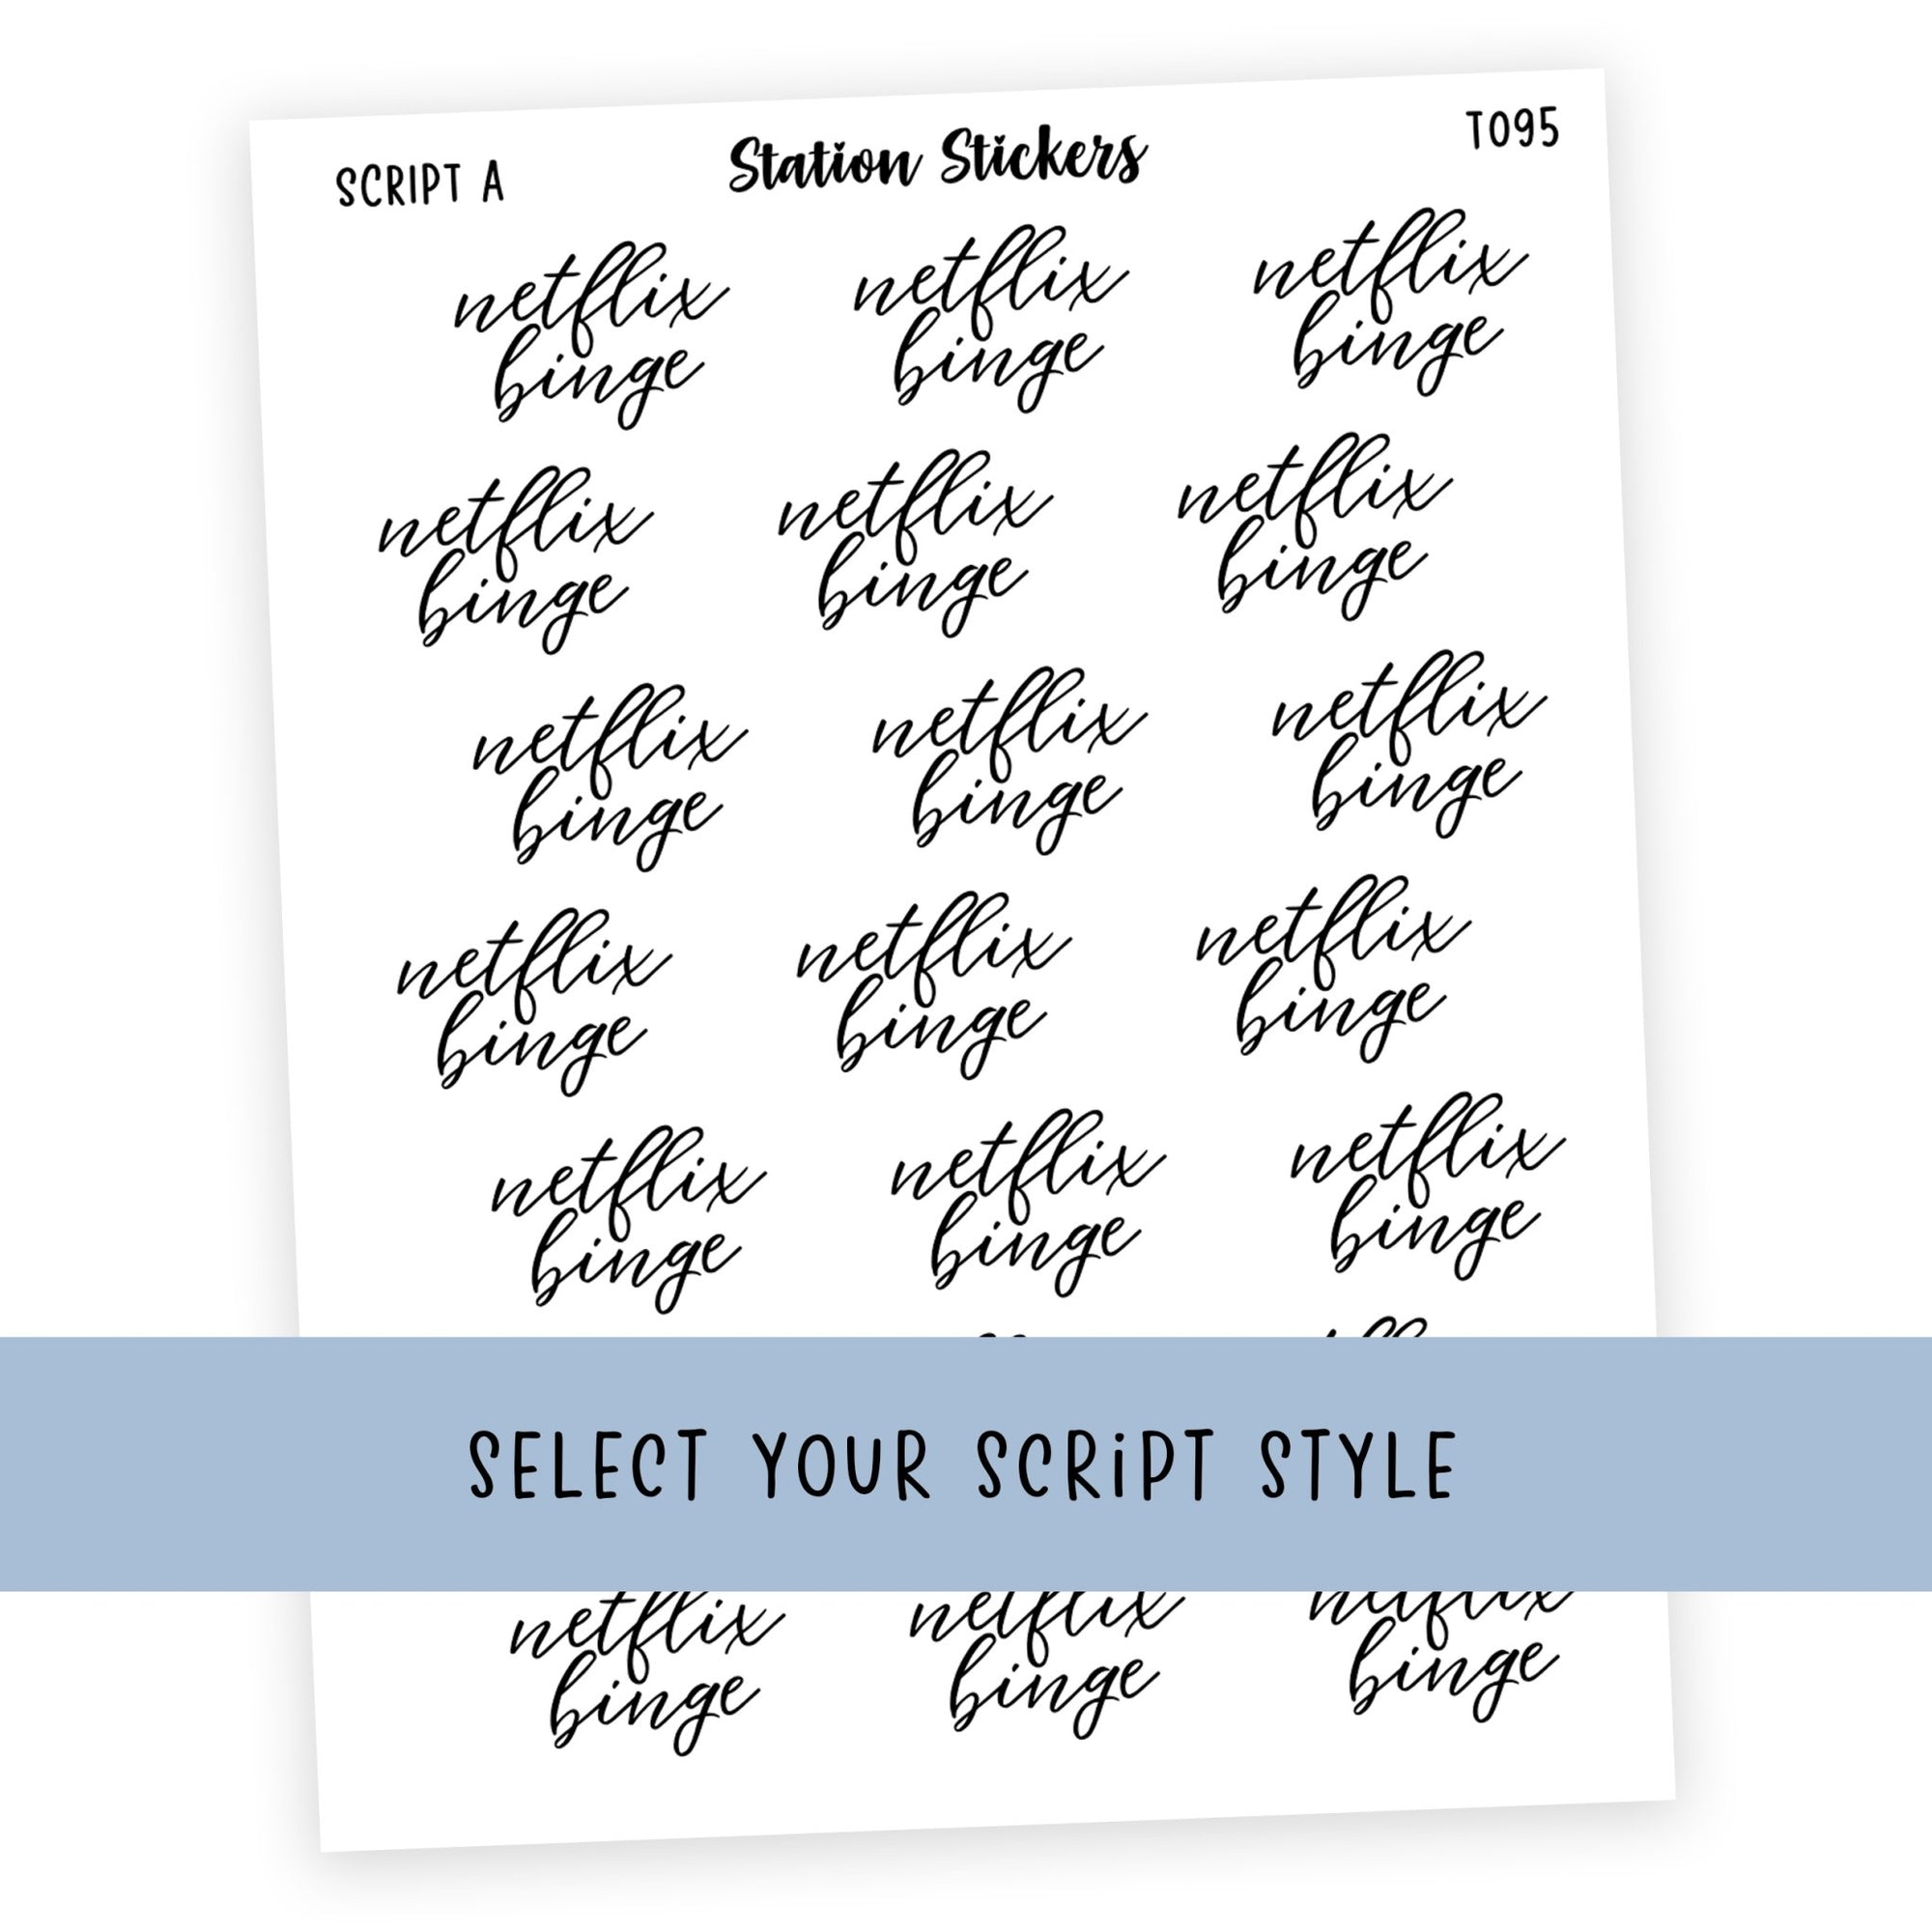 NETFLIX BINGE • SCRIPTS - Station Stickers